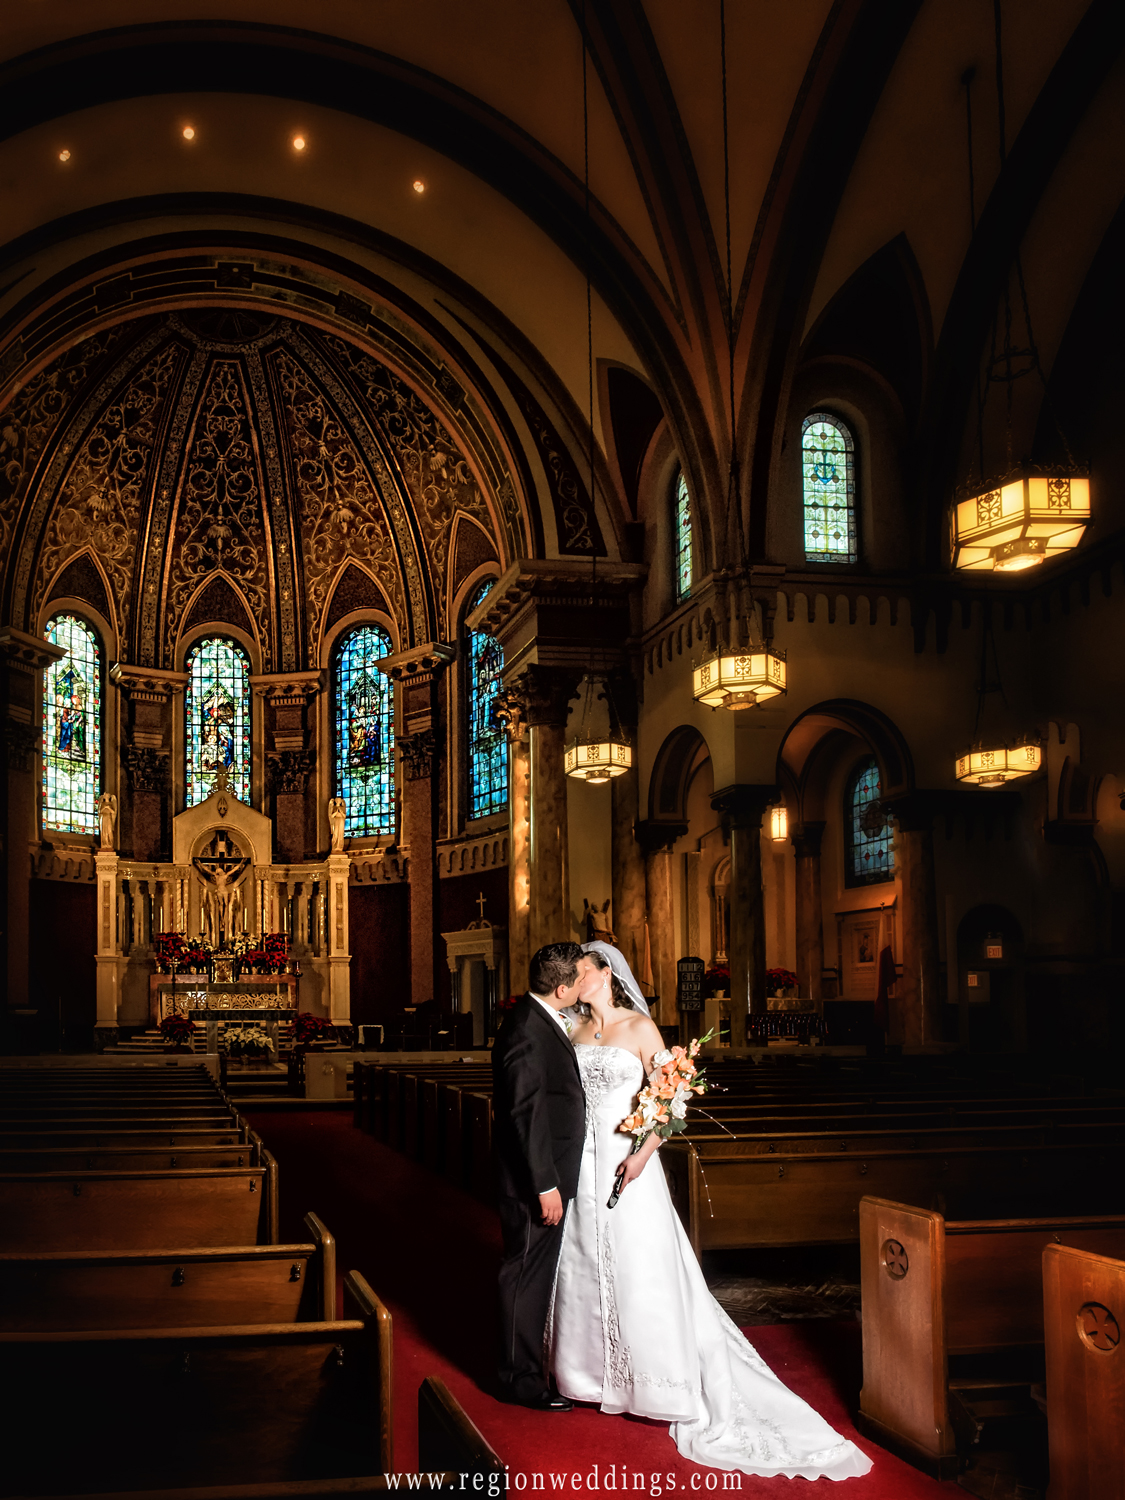 Bride and groom kiss in the aisle of the spectacular Saint Andrew the Apostle Parish in Calumet City.